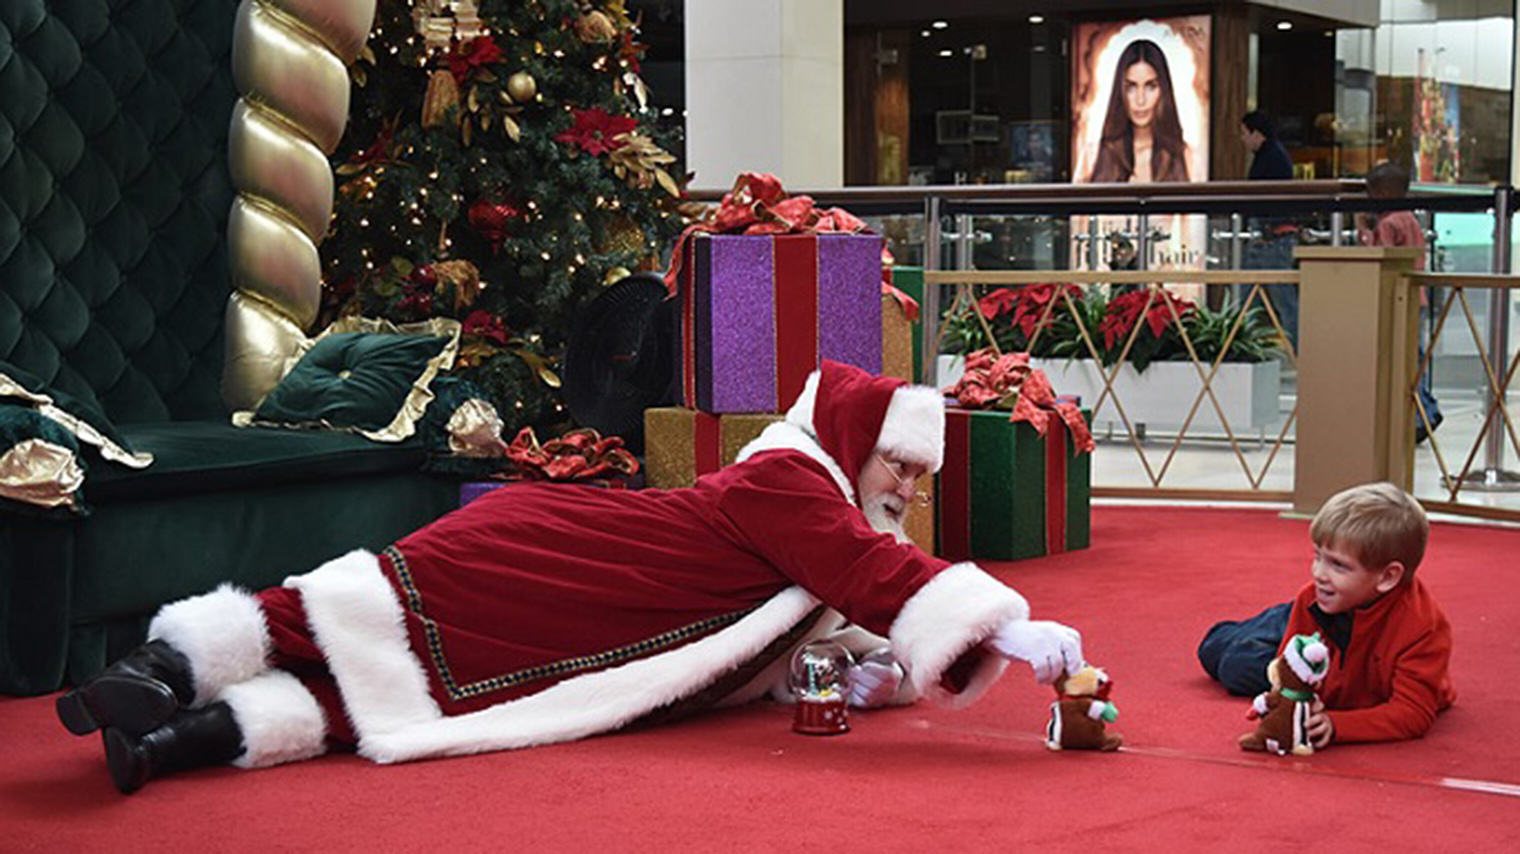 Santa Wins Christmas After Touching Encounter With Autistic Kid bray1